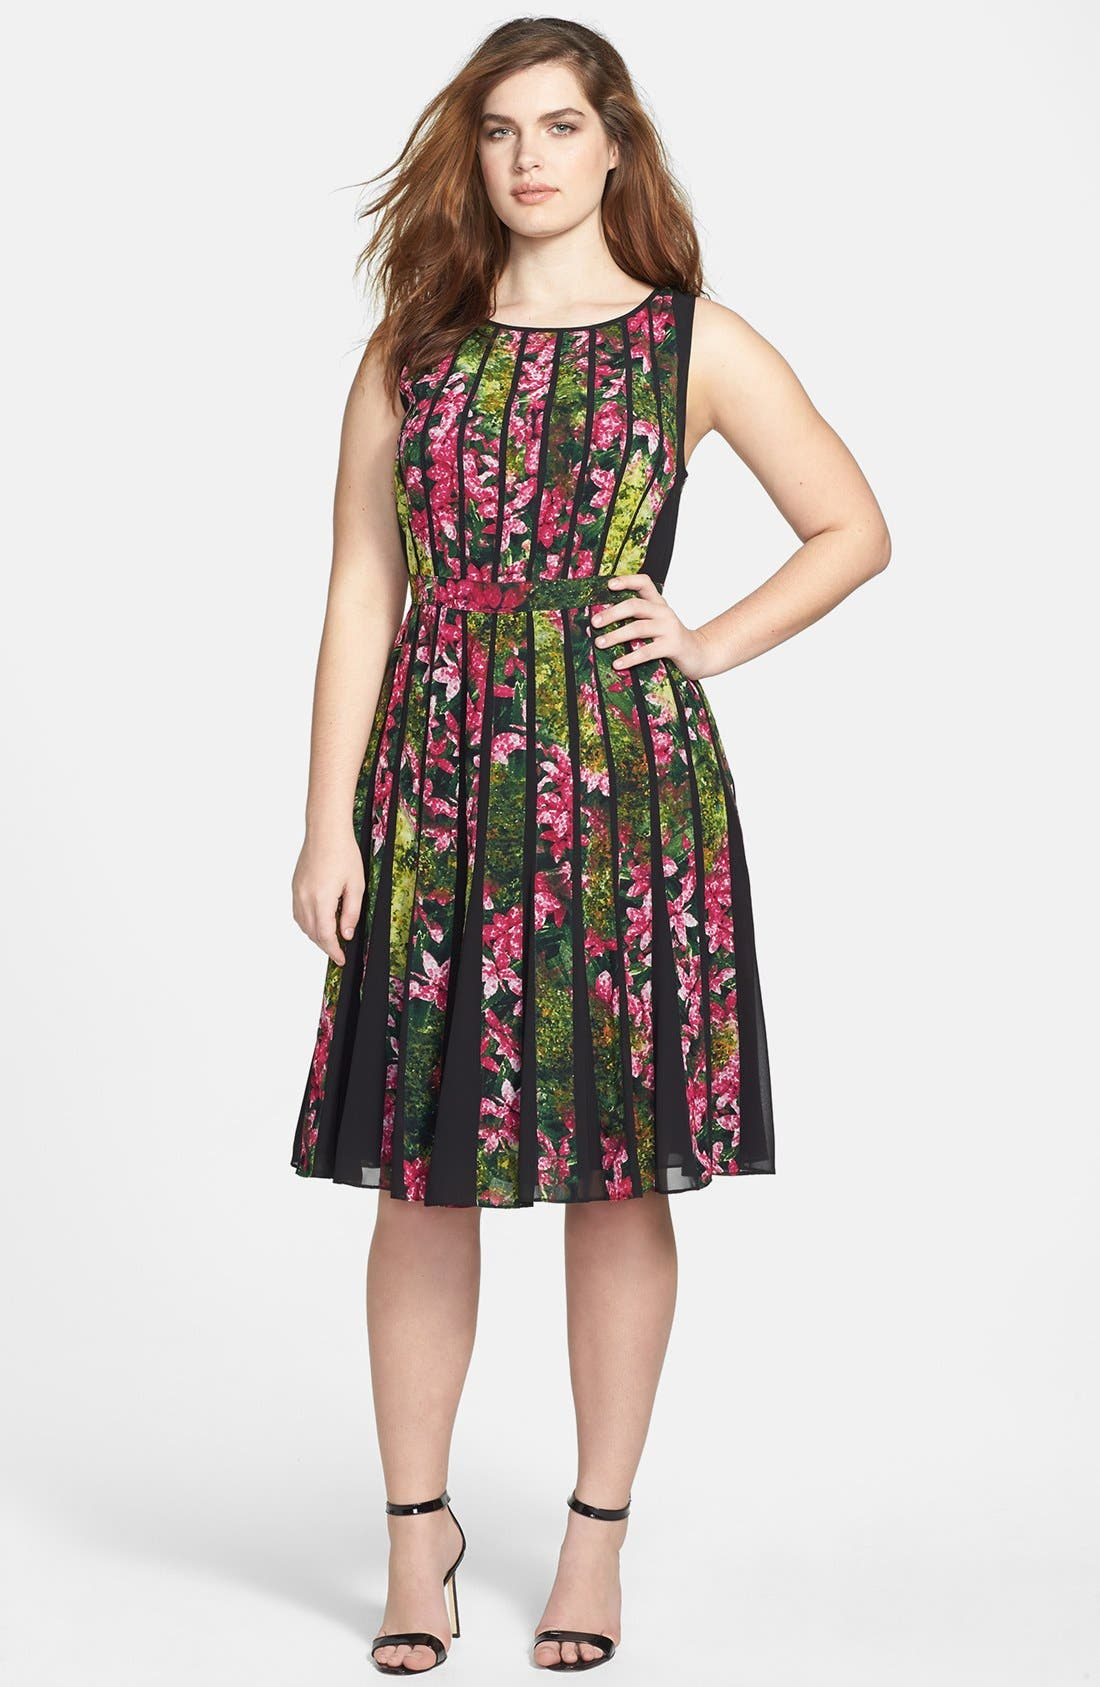 Alternate Image 1 Selected - Adrianna Papell Floral Pleated Dress (Plus Size)